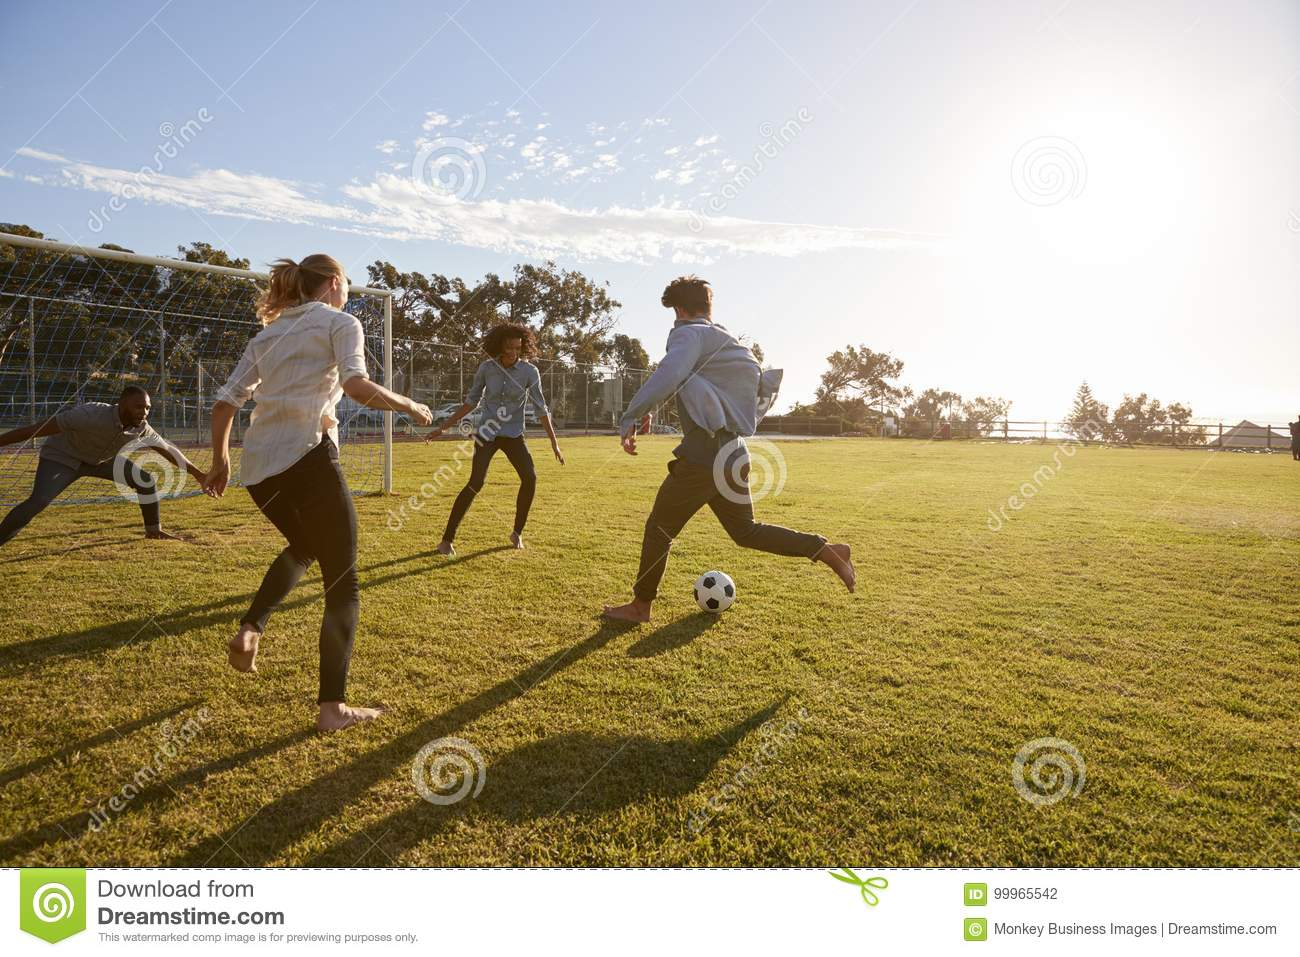 888 Adults Playing Football Photos - Free & Royalty-Free Stock Photos from  Dreamstime